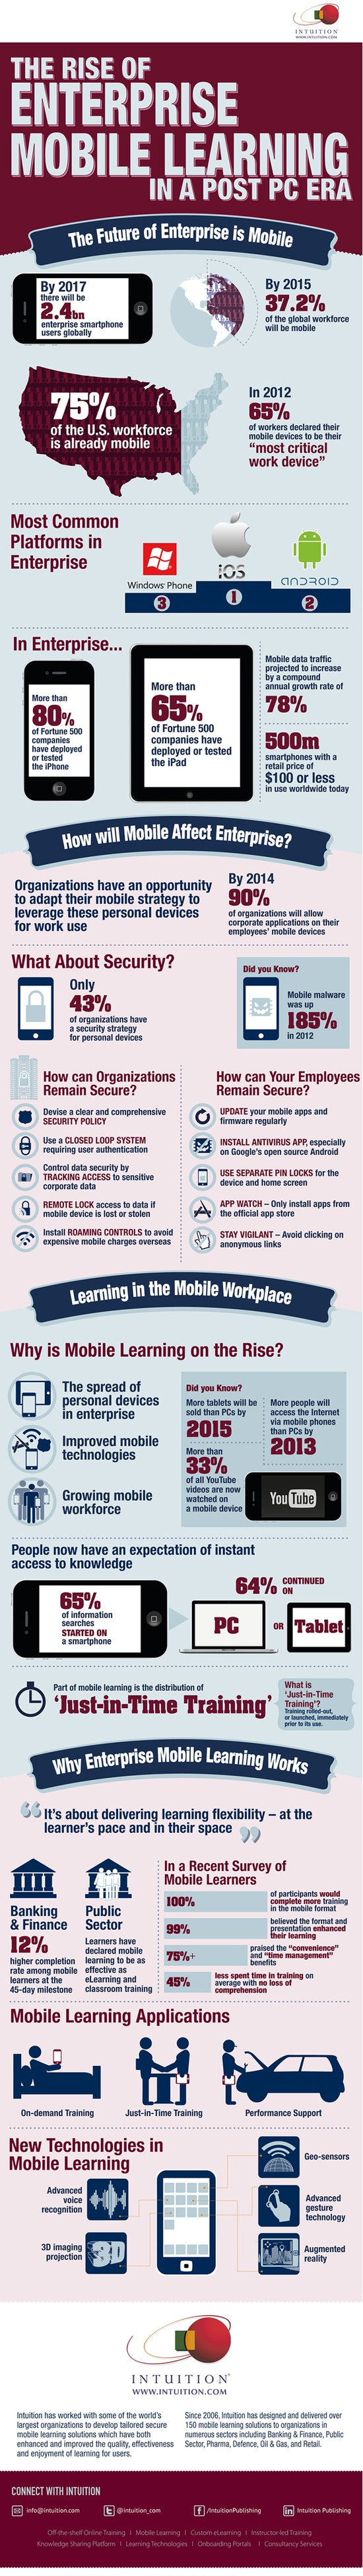 future-of-mlearning